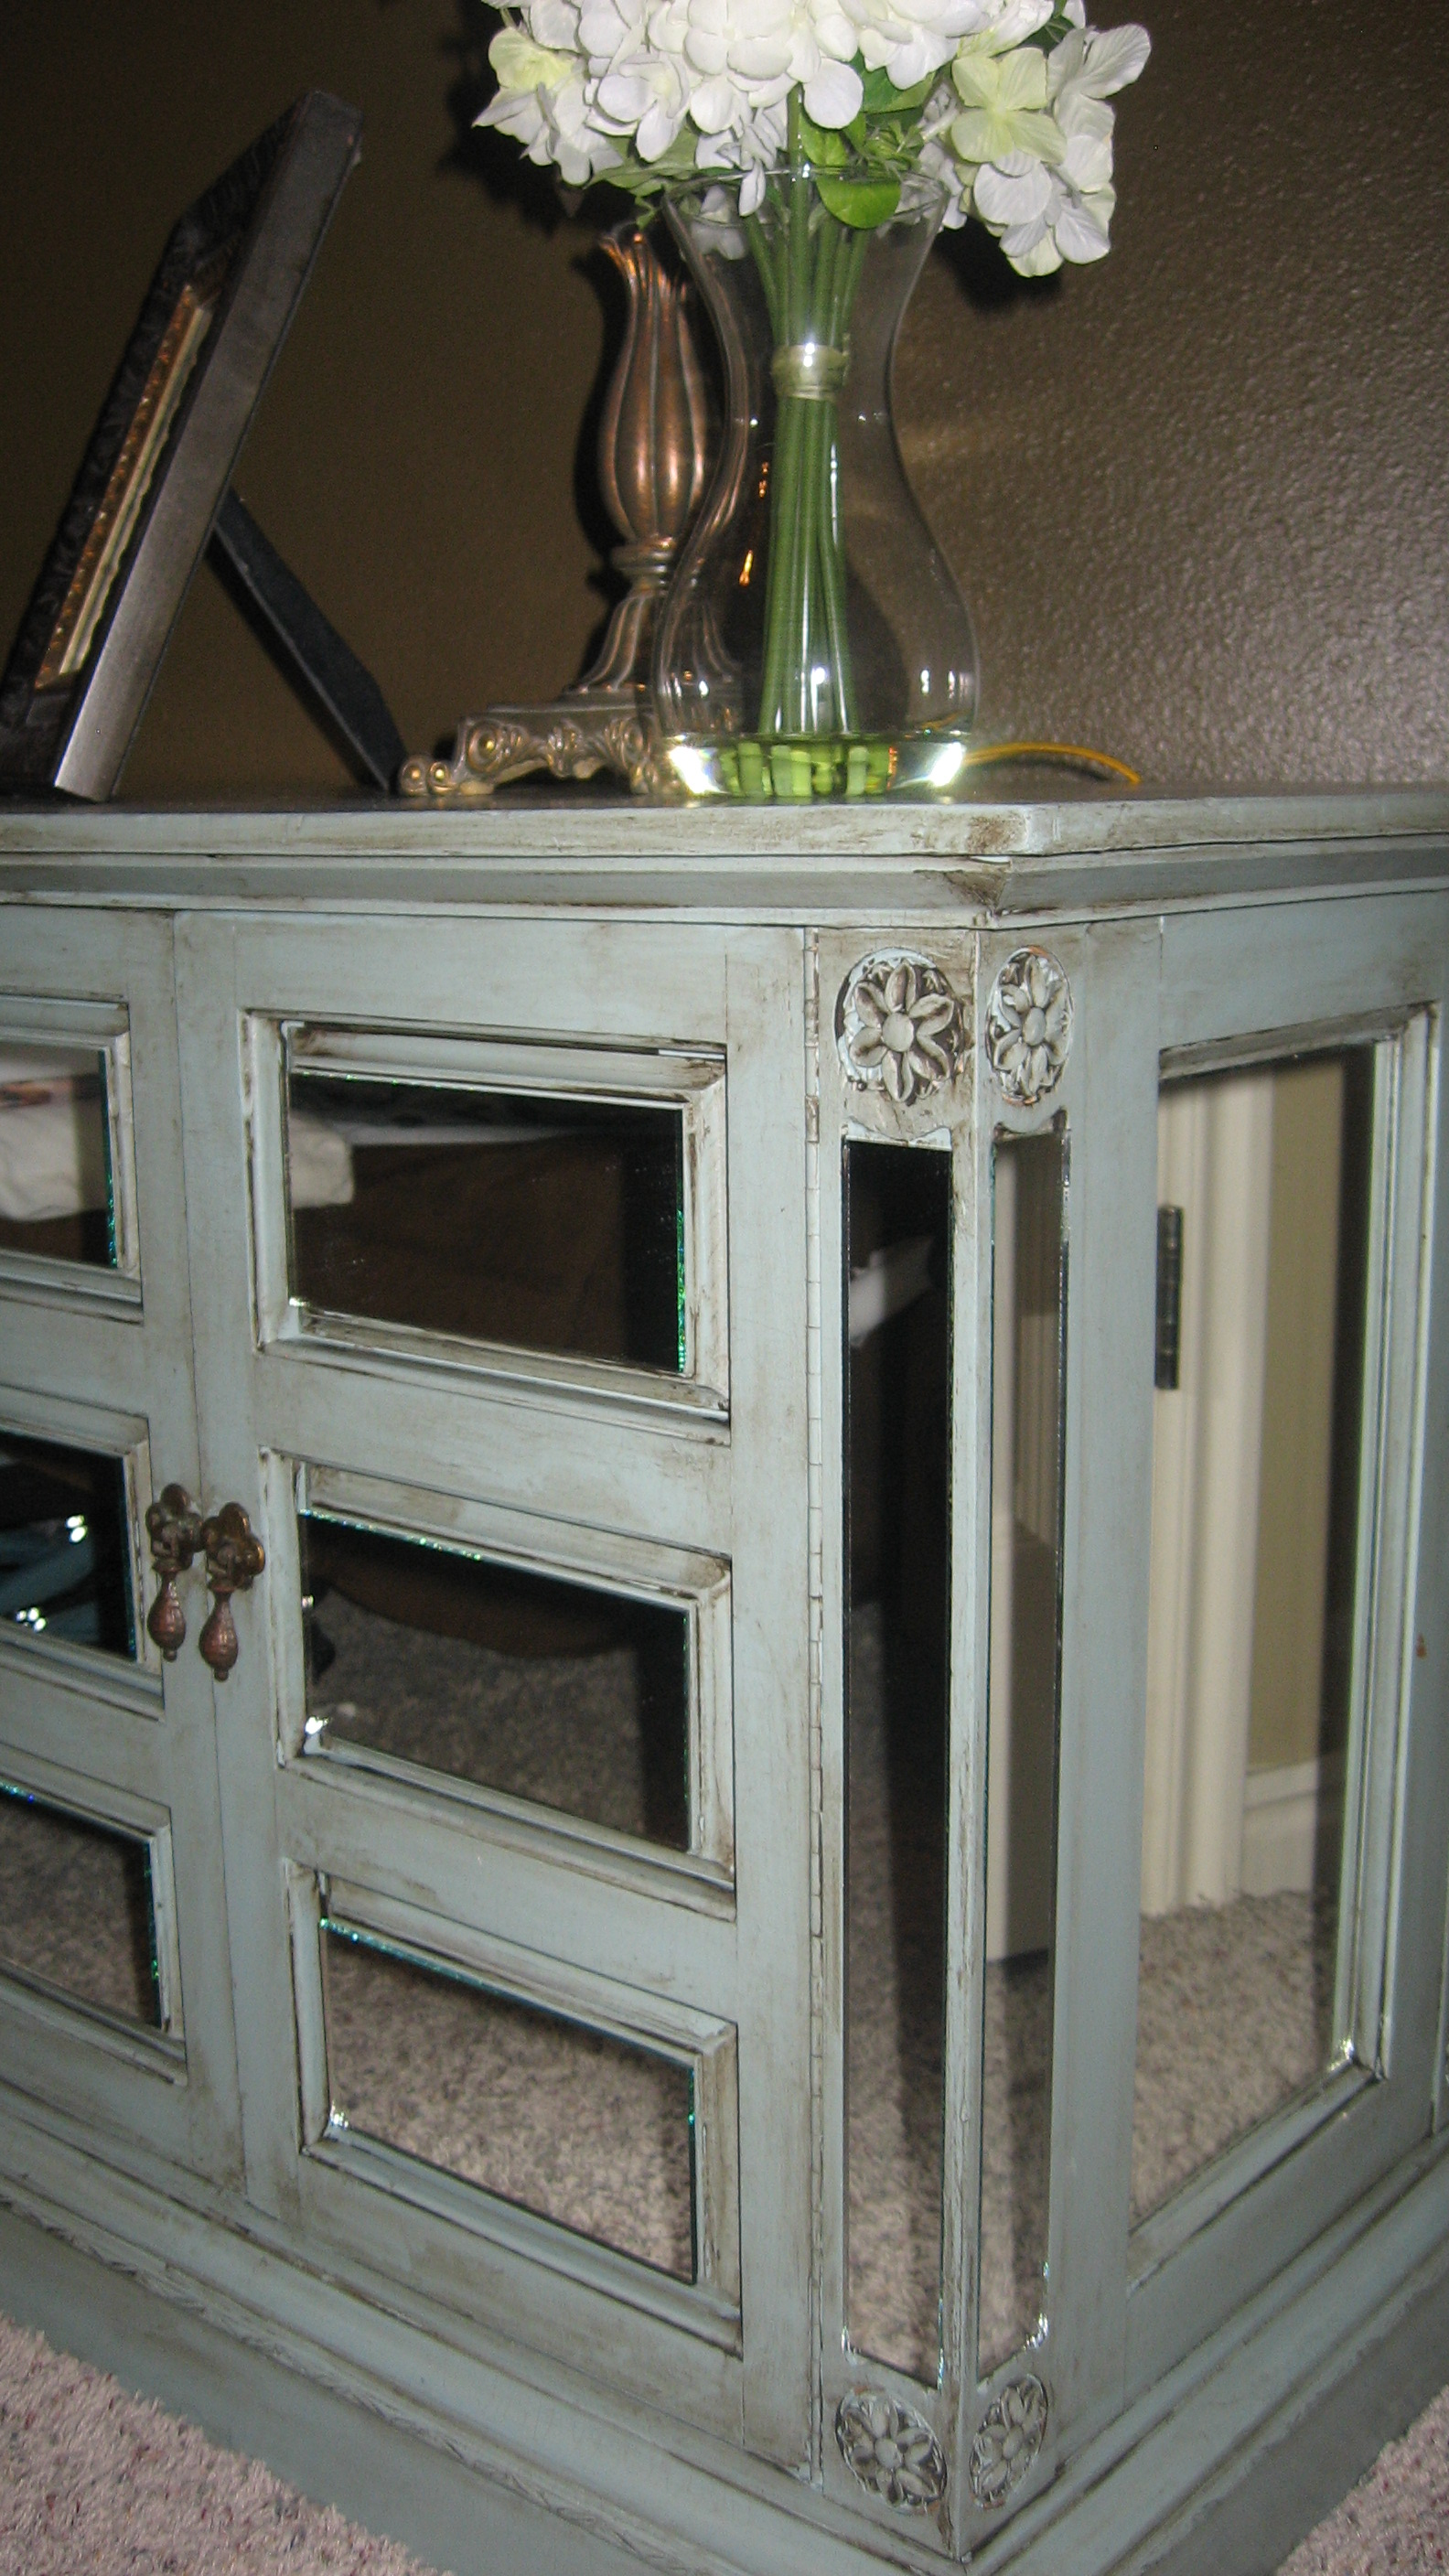 https://i0.wp.com/designedtothenines.com/wp-content/uploads/2010/08/mirror-nightstand-wedding-024.jpg